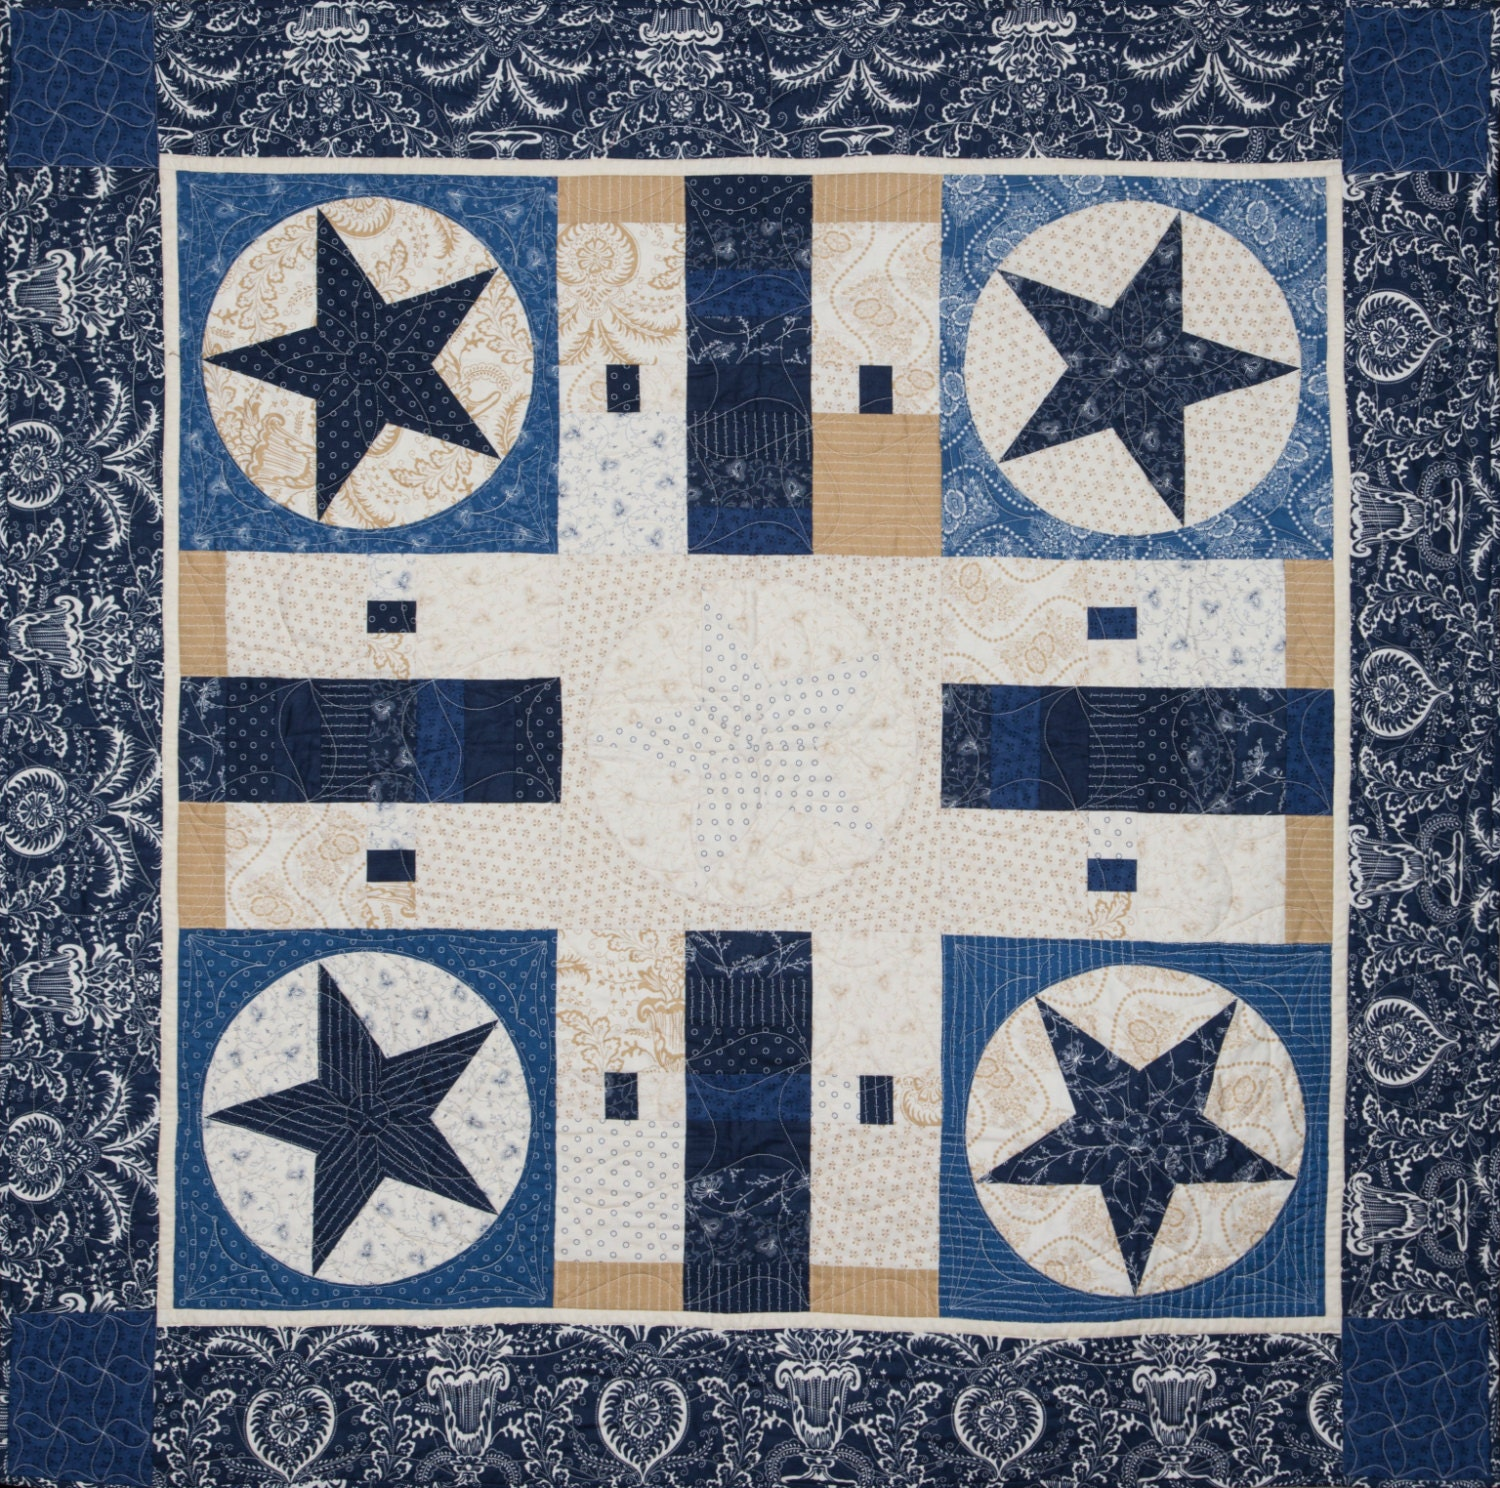 Game Board Quilt Pattern By Minick And Simpson By